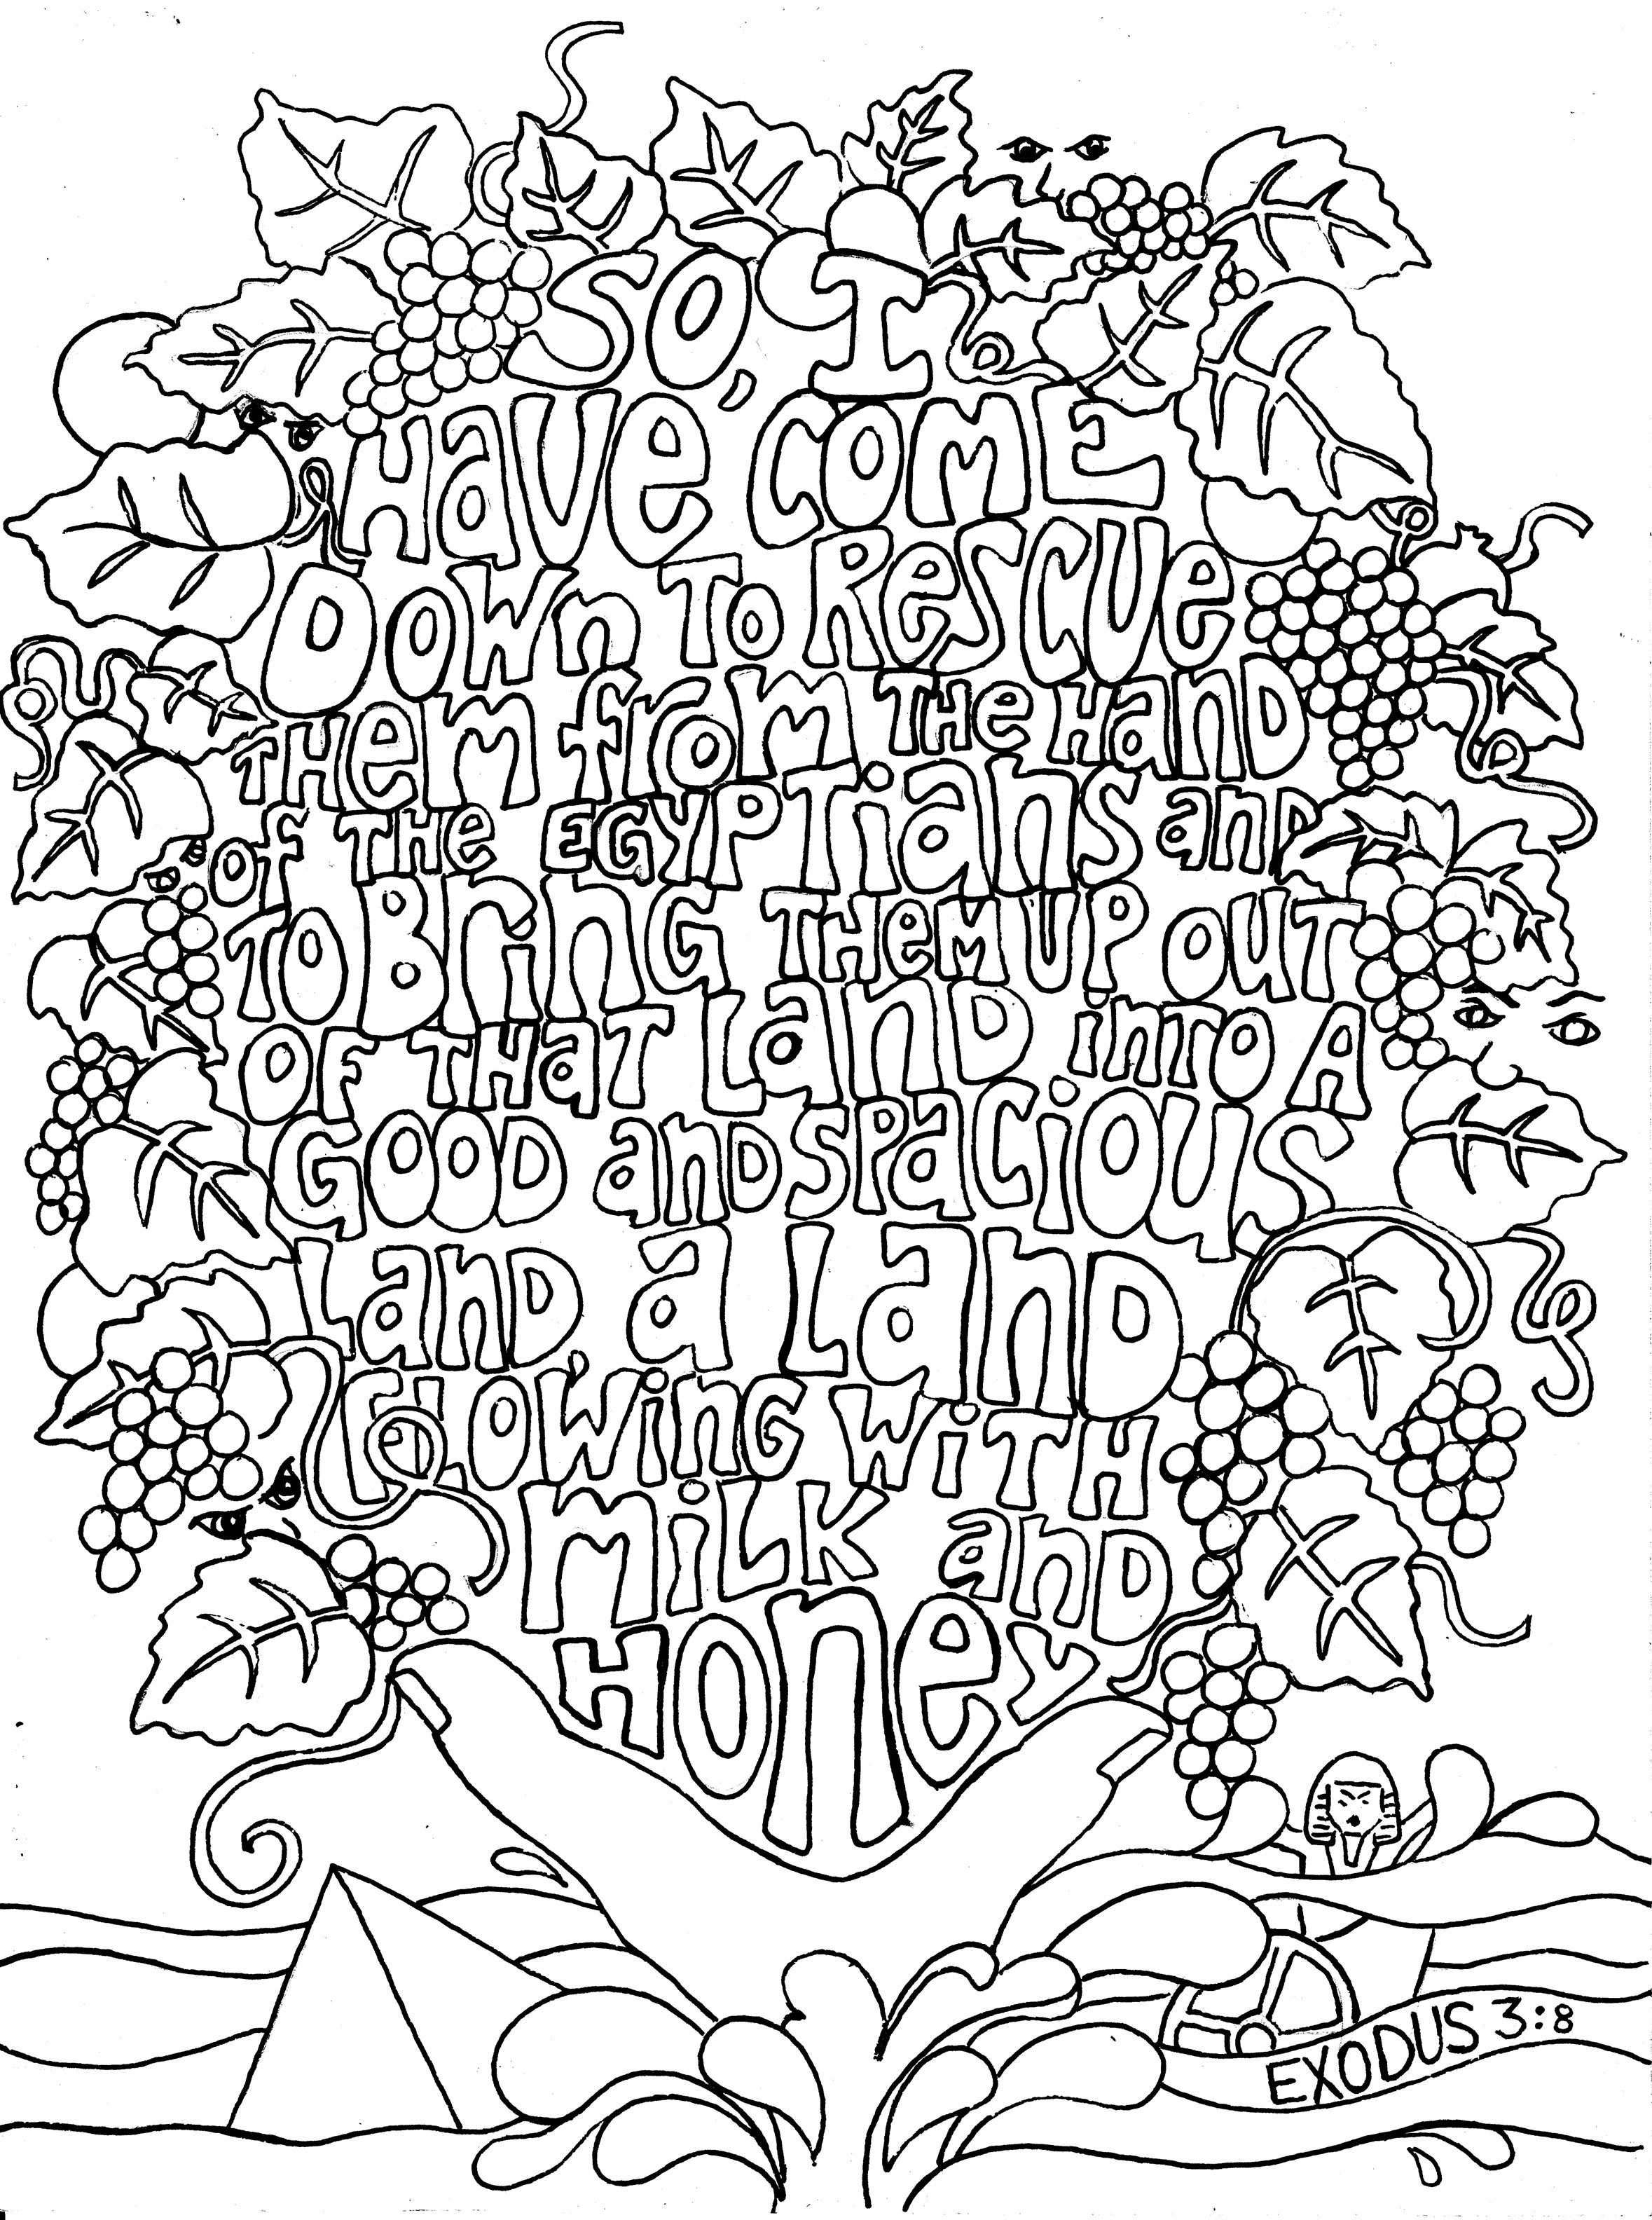 Printable coloring pages about the bible - Exodus 3 8 Adult Colouring In Sheets Of Bible Verses Link Is Courtesy Of A Google